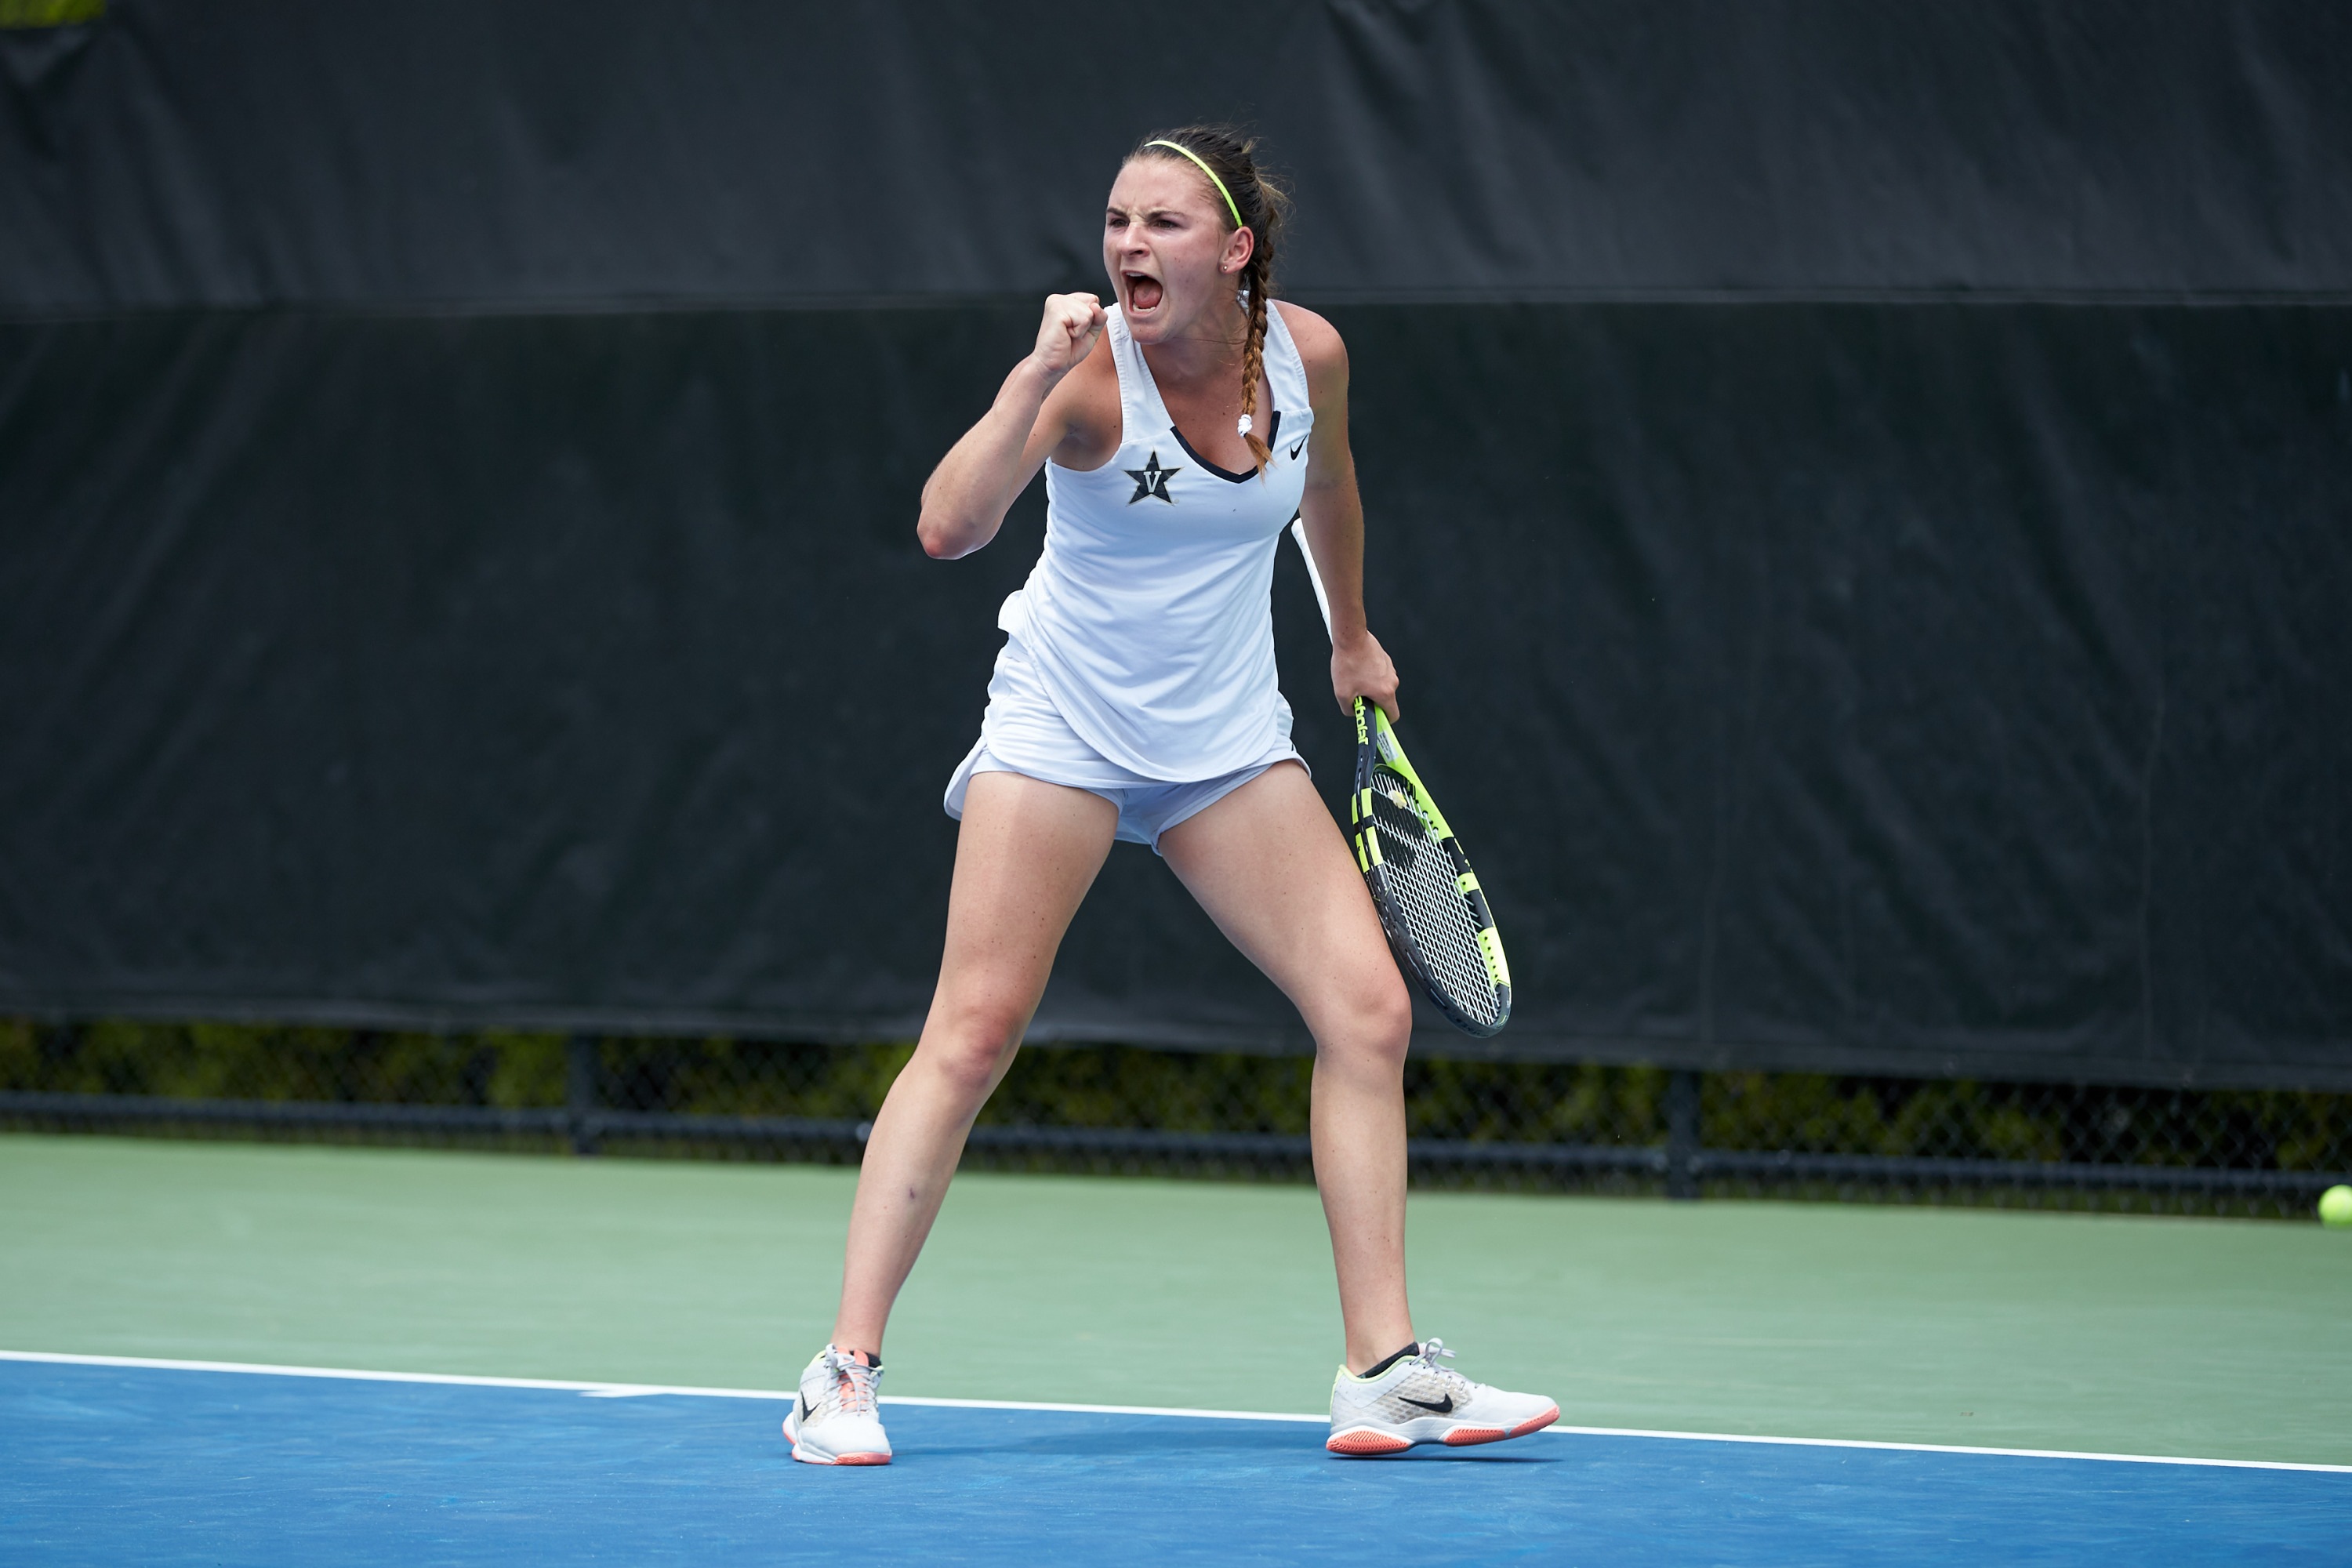 The top-seeded No. 2 Vanderbilt women's tennis team defeated No. 4 Georgia Tech 4-2 in 2018 NCAA semifinals. Photos by Brian Westerholt (5/21/18)  Summer Dvora